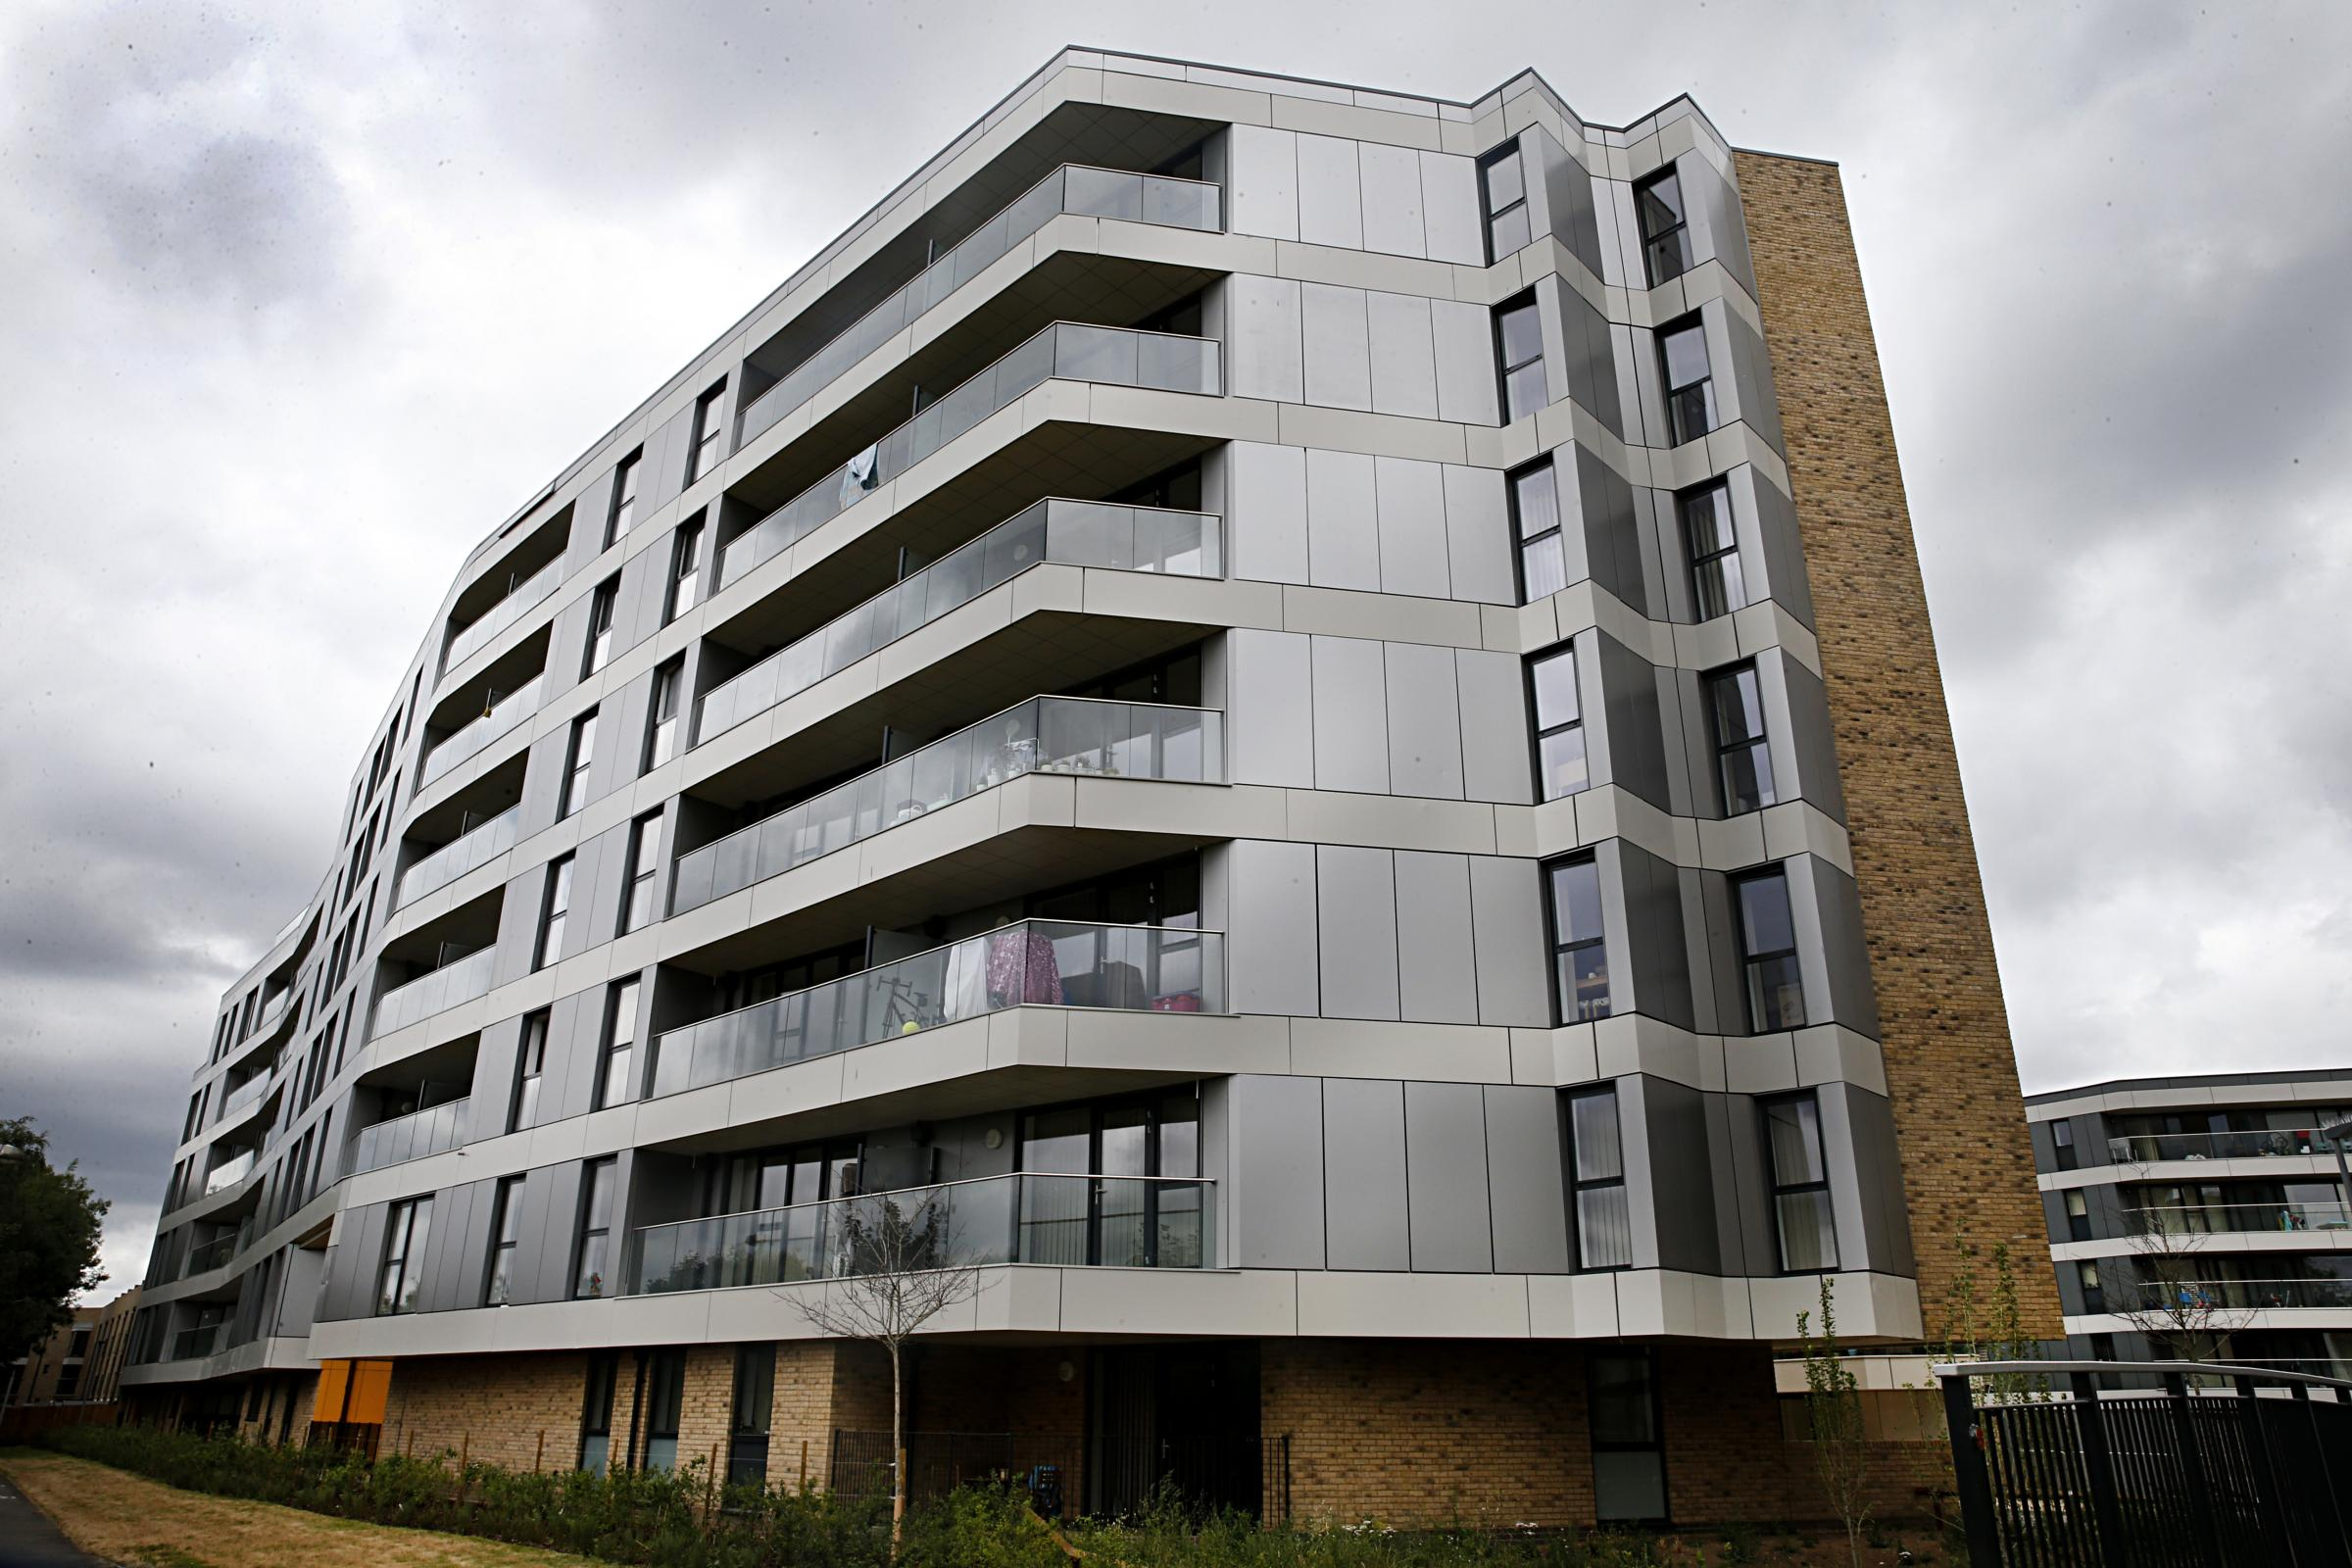 The cladding on Lingfield Apartments in Walthamstow Stadium failed a fire safety test after the Grenfell fire